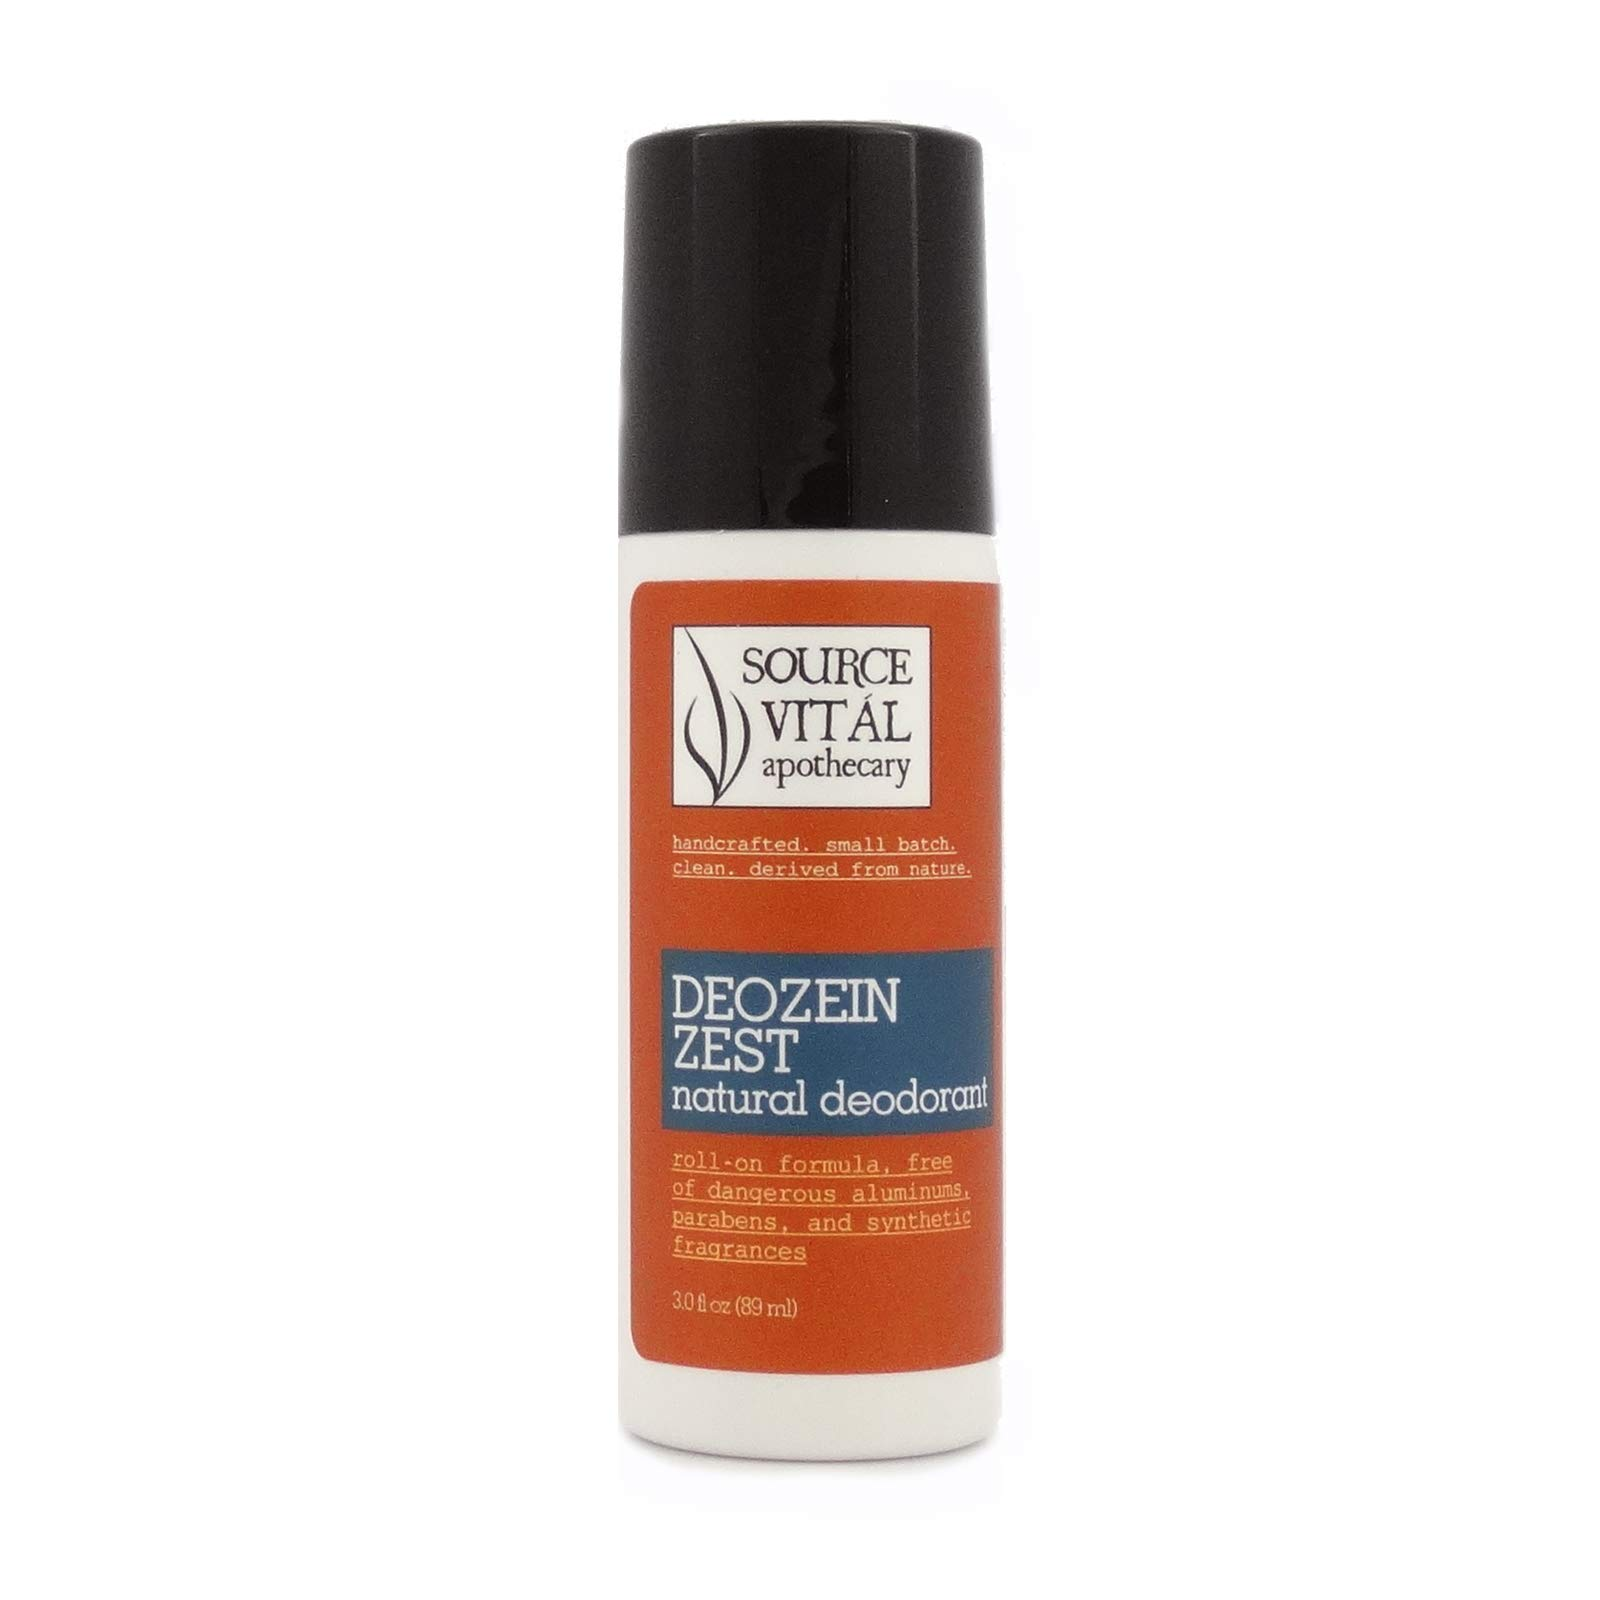 Source Vitál Apothecary | Deozein Zest Natural Roll-On Deodorant | Free of Parabens and Baking Soda, Non-Toxic, Odor-Controlling for Men and Women | 3 fl. oz.